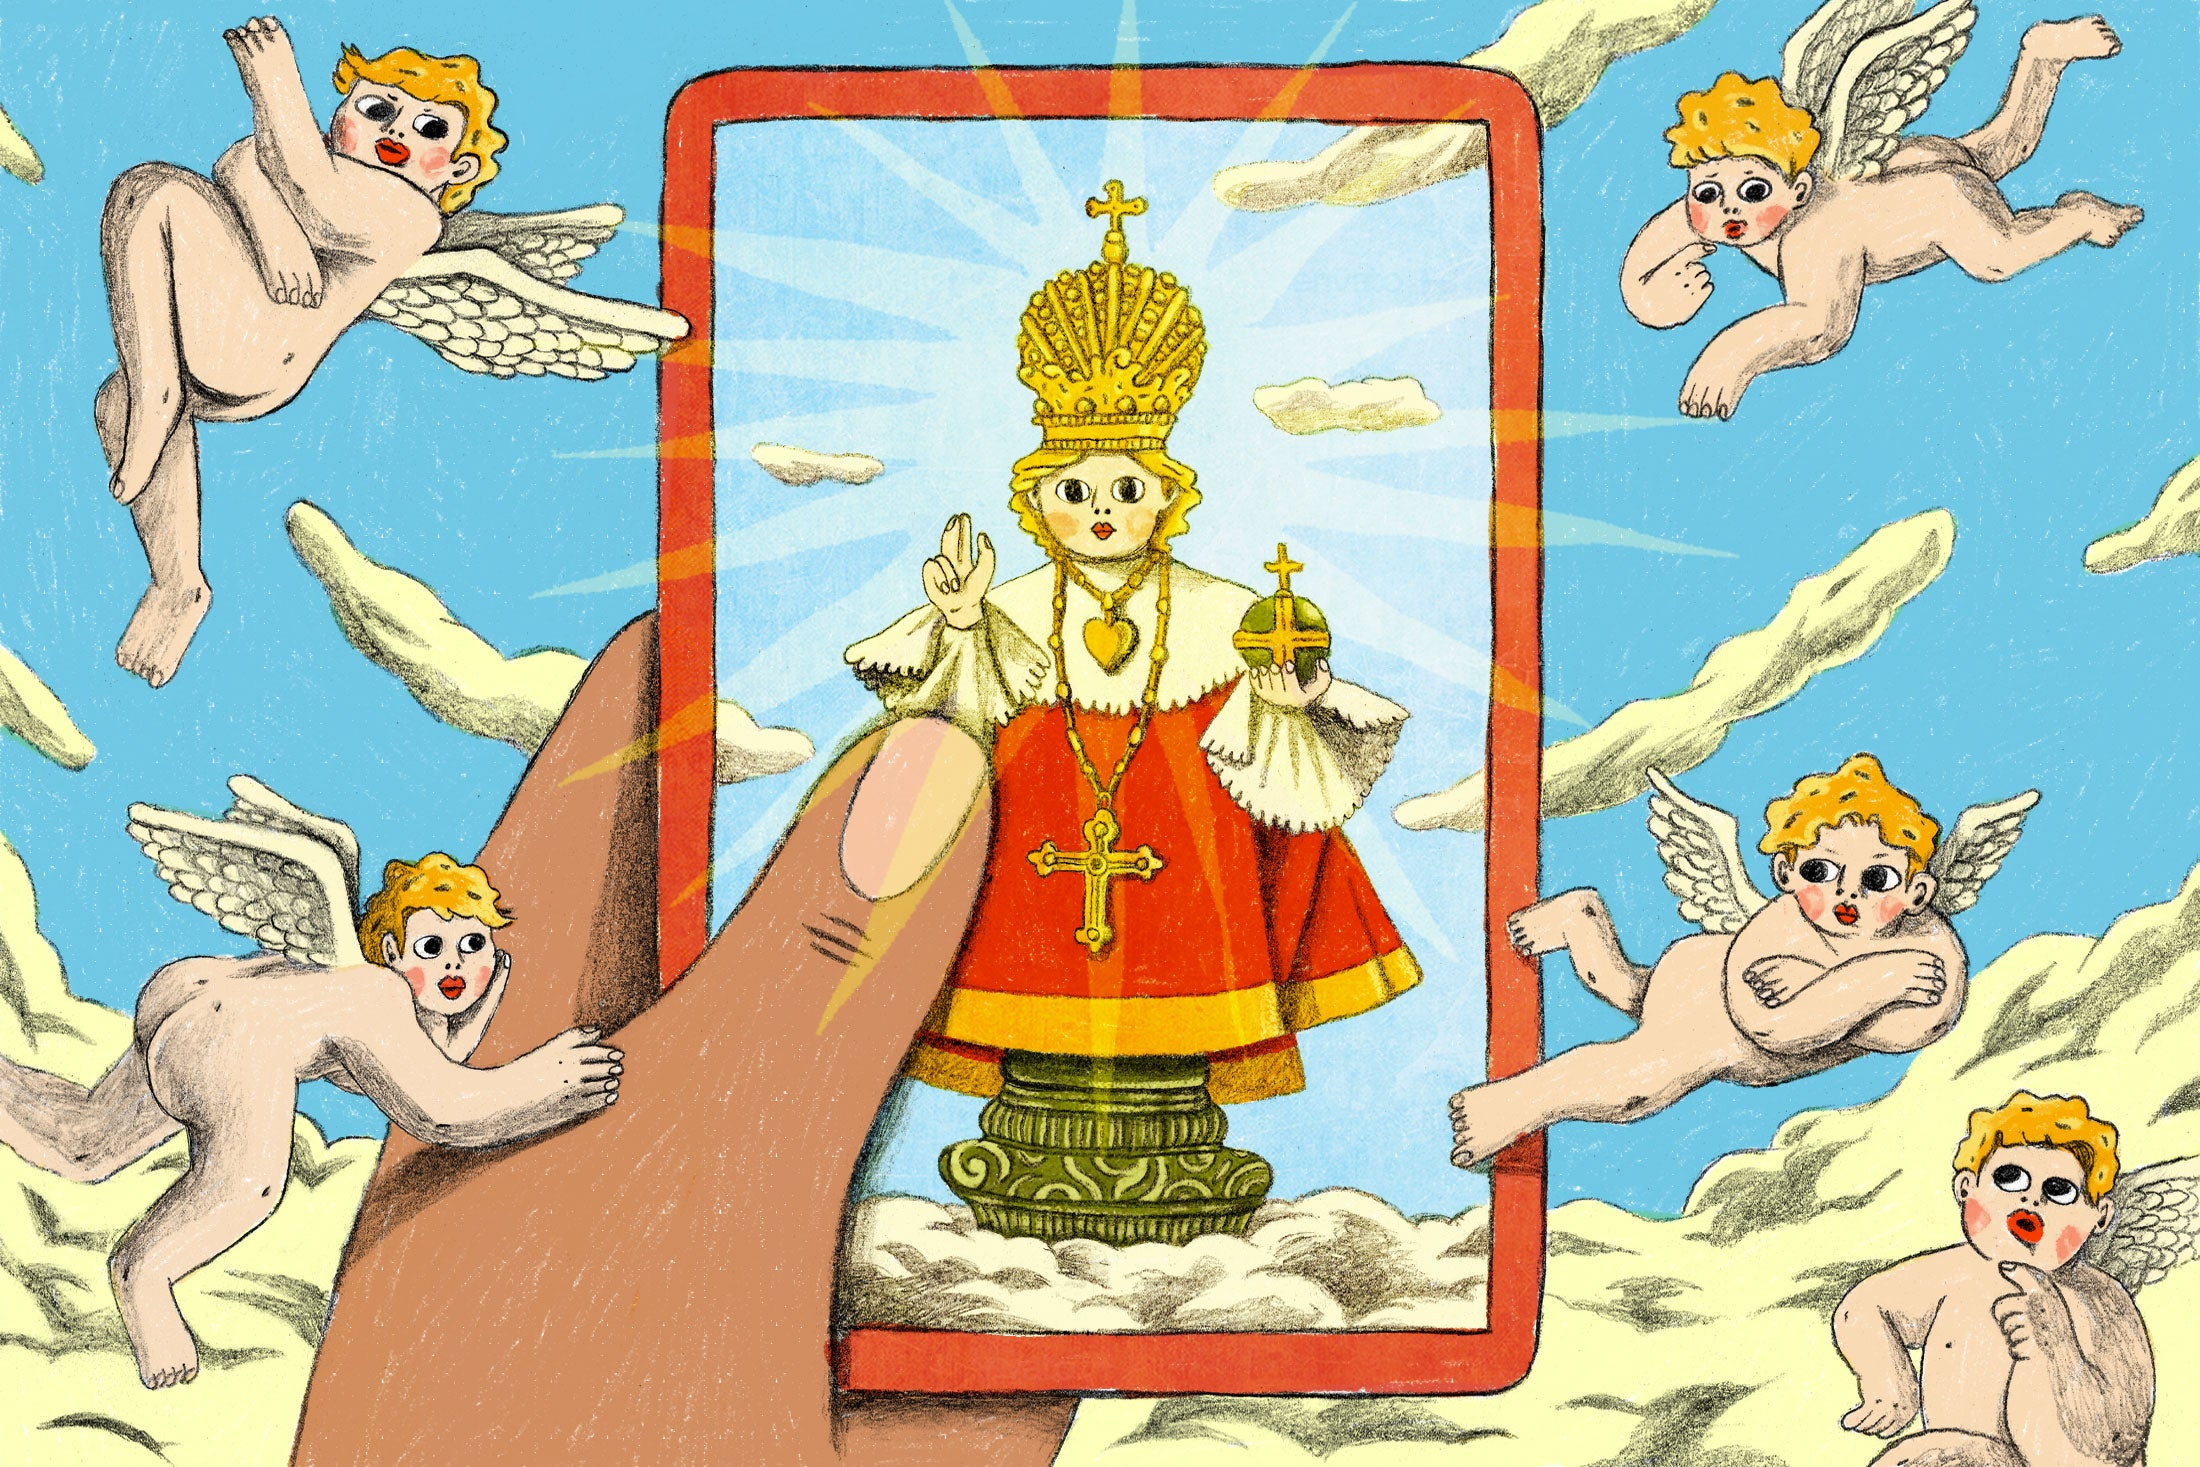 Illustration: A hand holds a tarot-inspired card adorned with a holy figure, as cherubs and clouds surround them both.